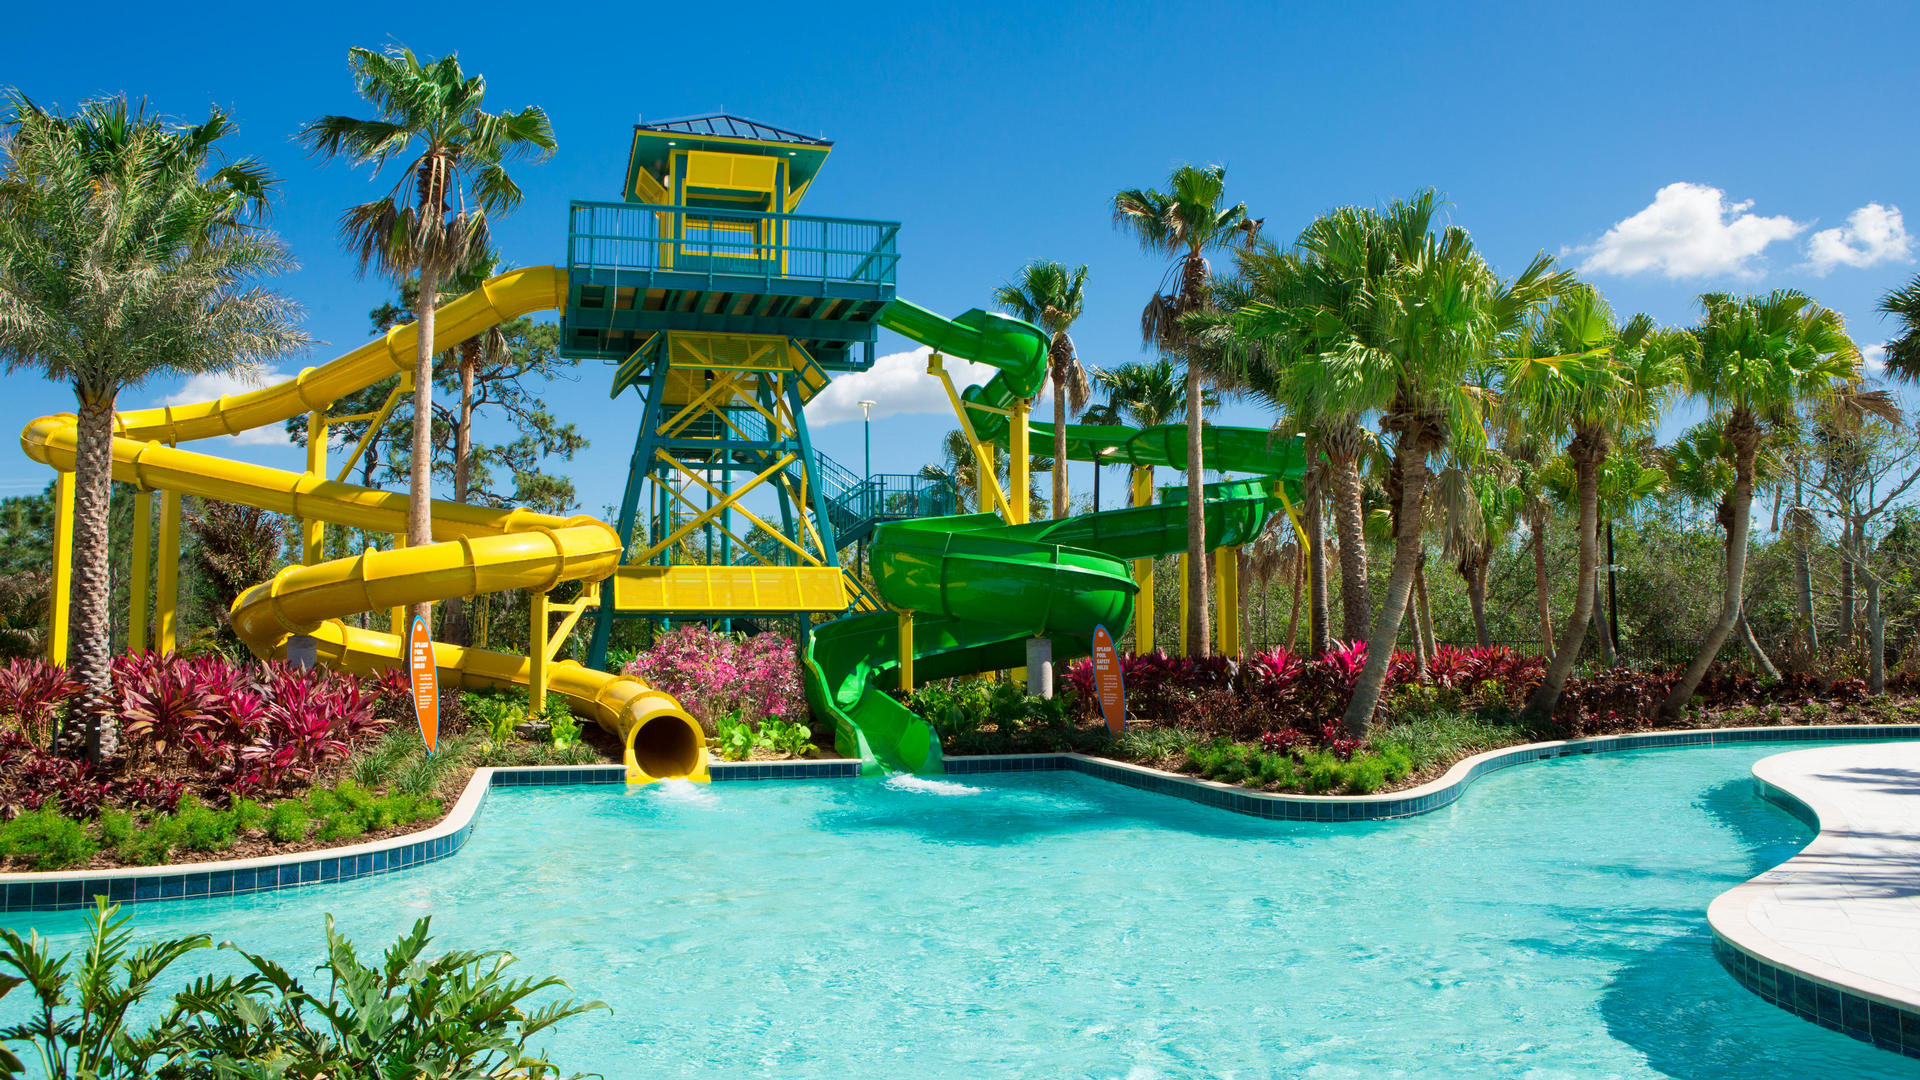 Orlando Hotel with a Water Park  The Grove Resort